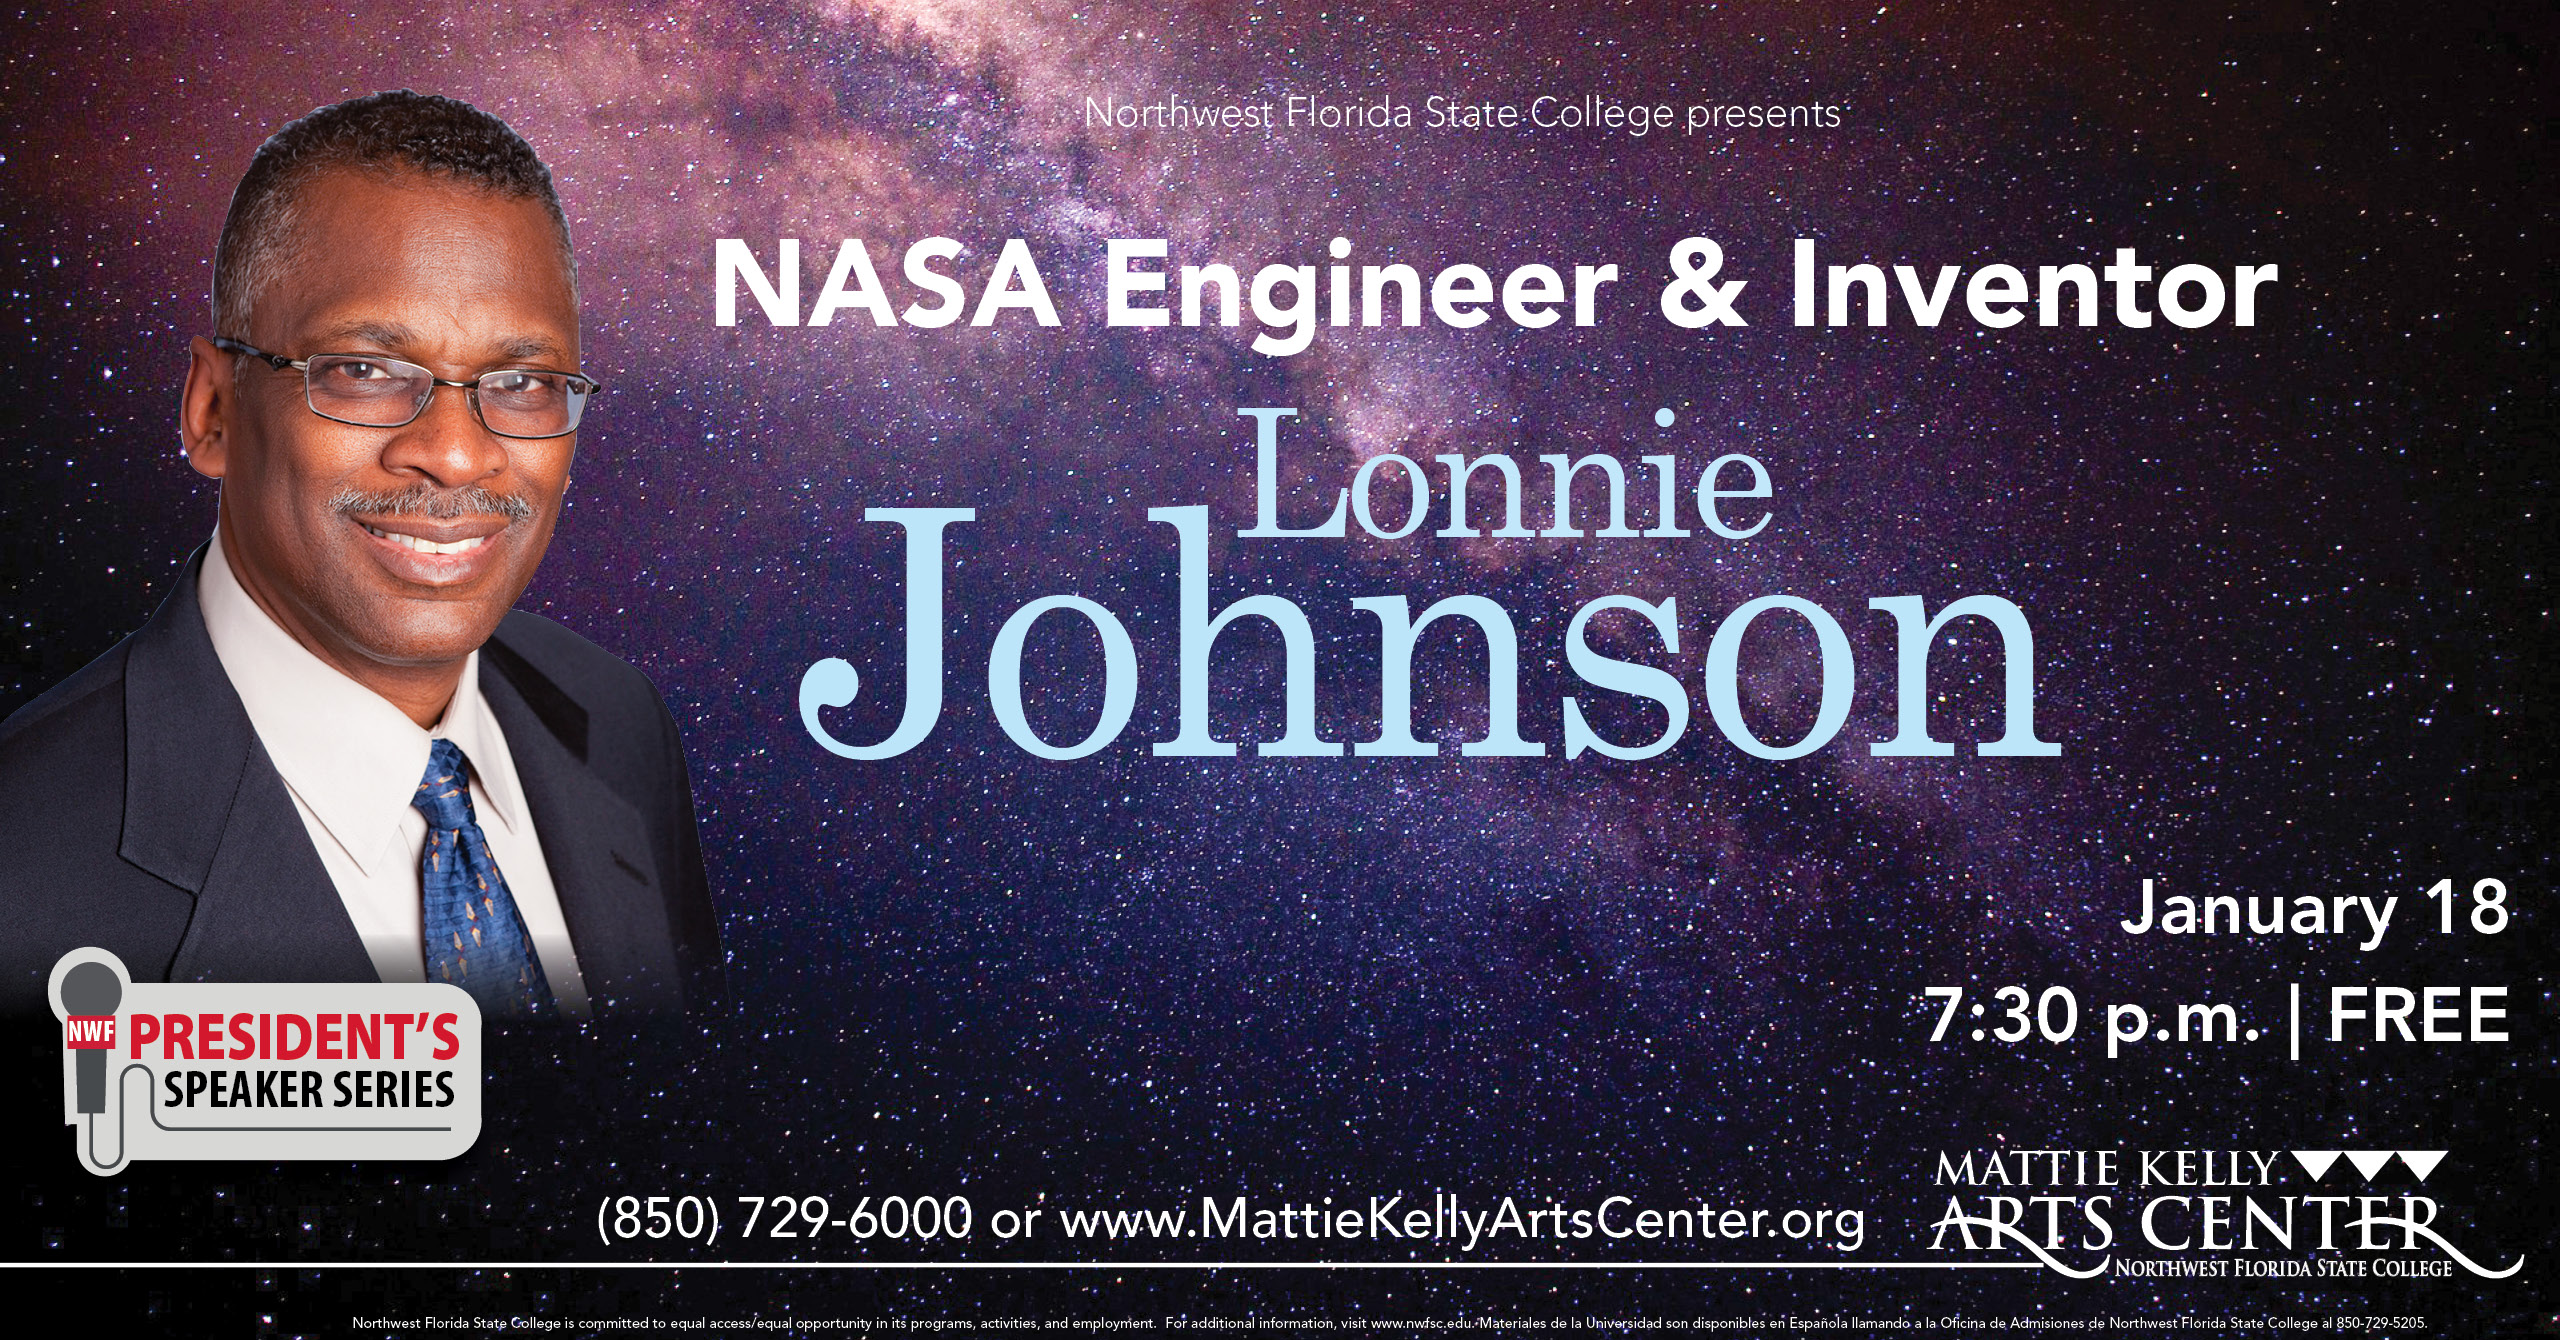 NASA Engineer & Inventor Lonnie Johnson